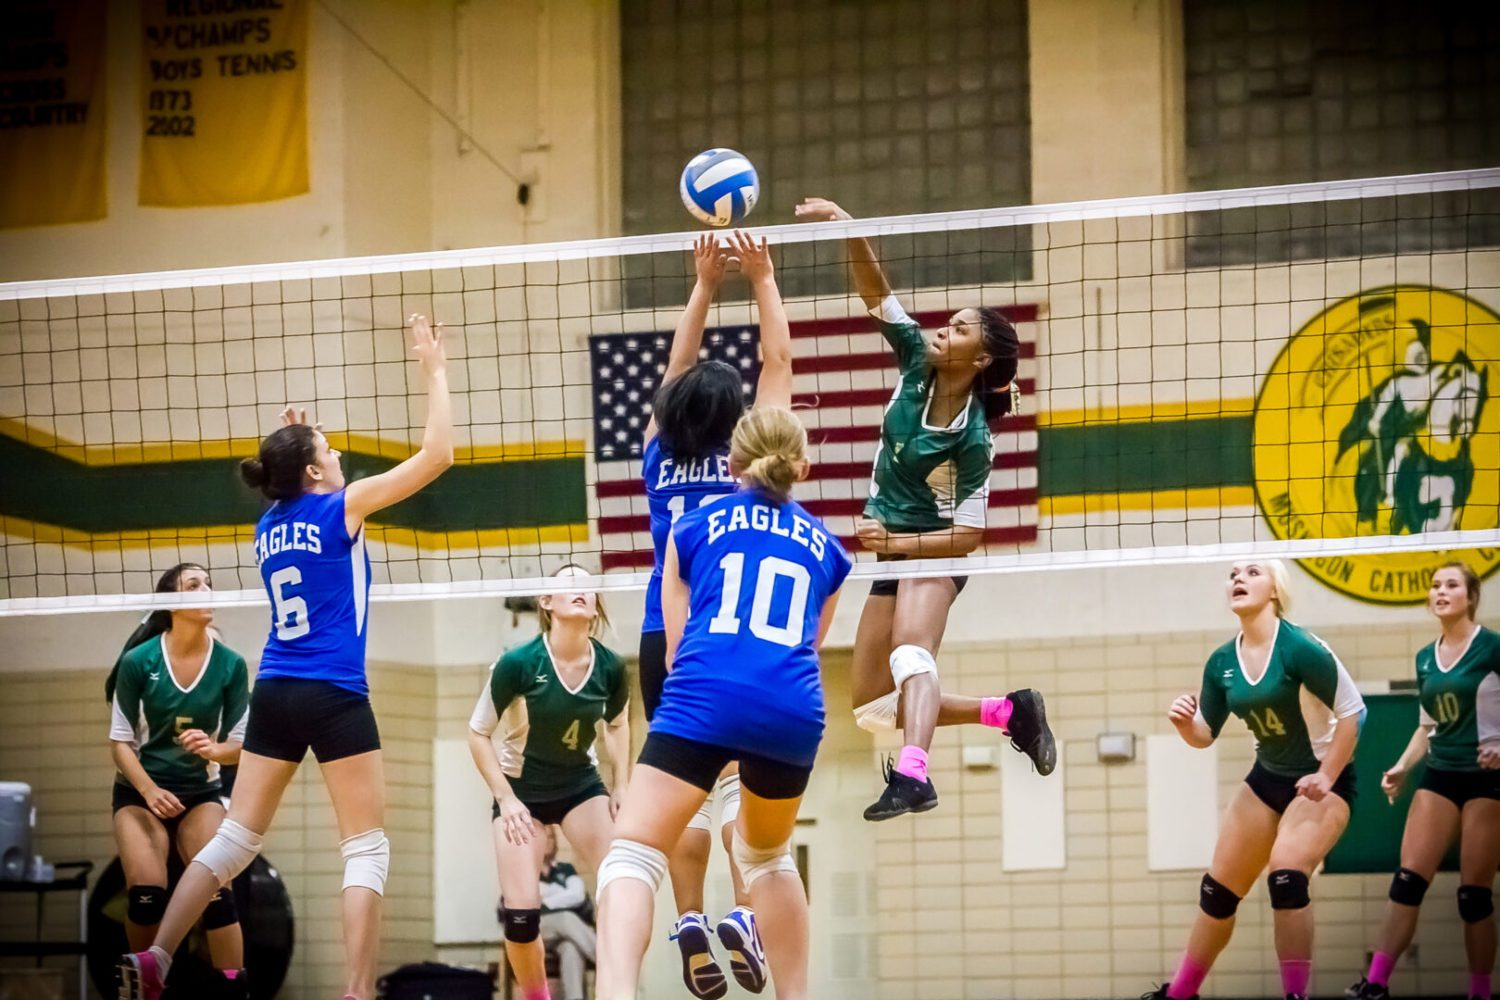 Muskegon Catholic Central rolls in district volleyball match